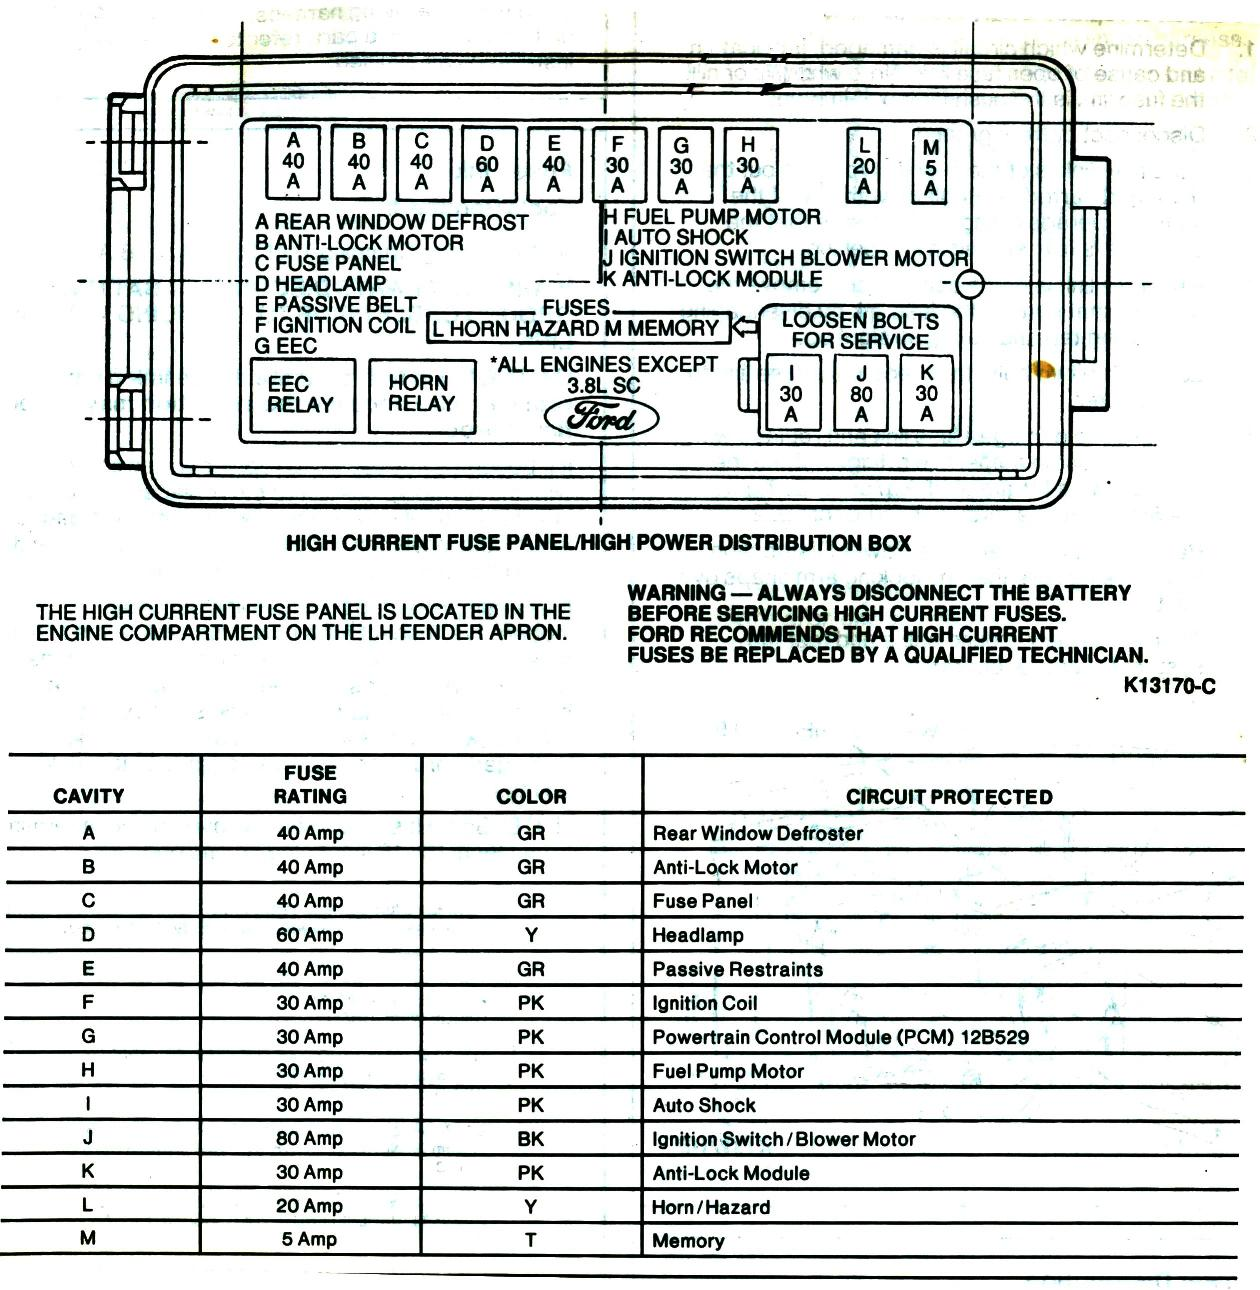 dist box under dash fuse box diagram? 2002 ford thunderbird fuse box diagram at aneh.co